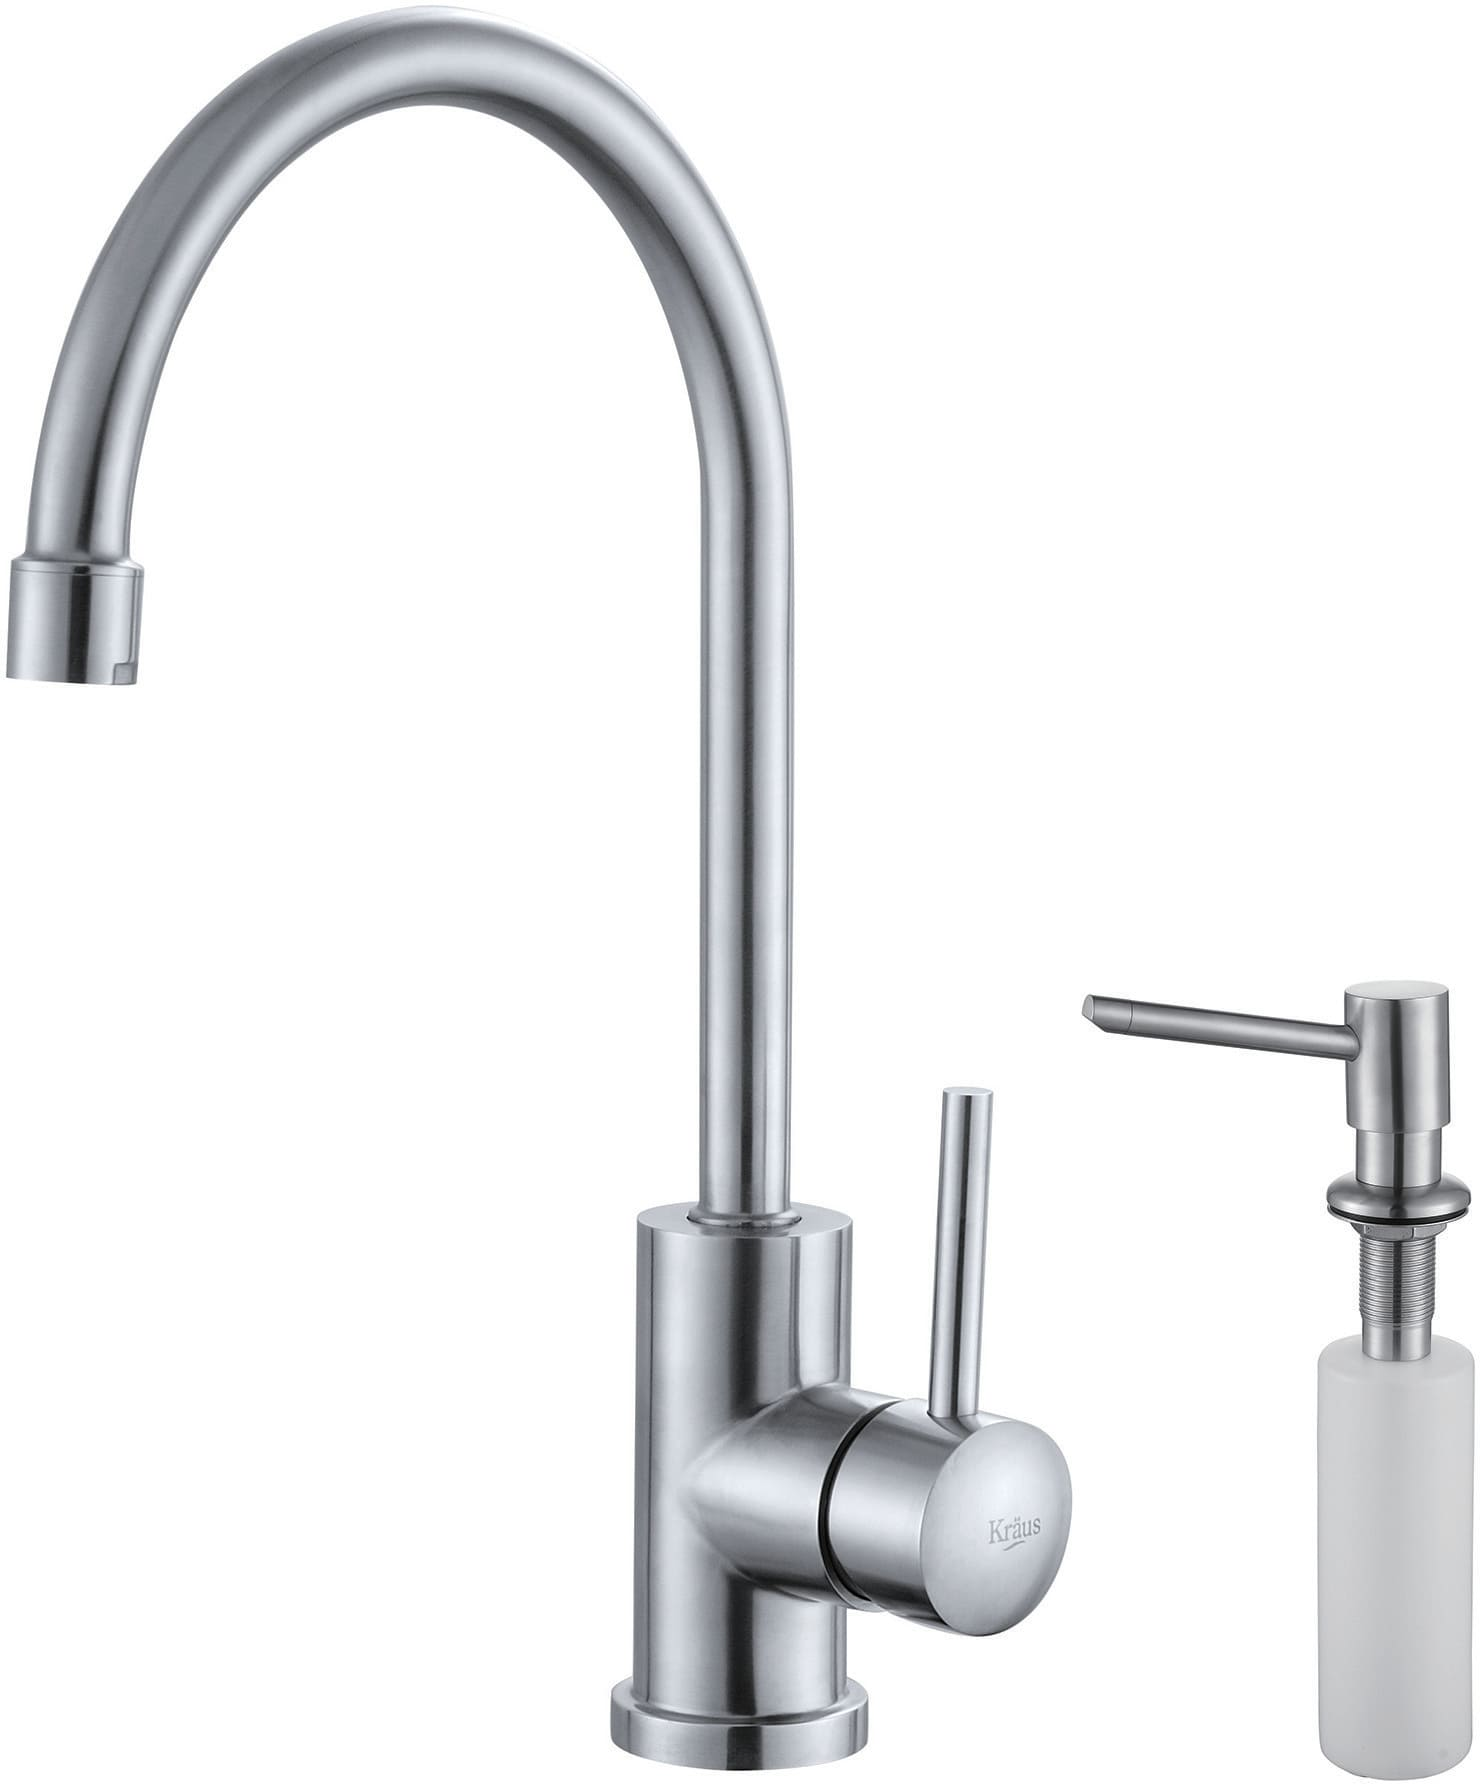 rinse pre in kpf pull stainless canada single kraus dp faucets sinks steel amazon handle kitchen faucet style down commercial